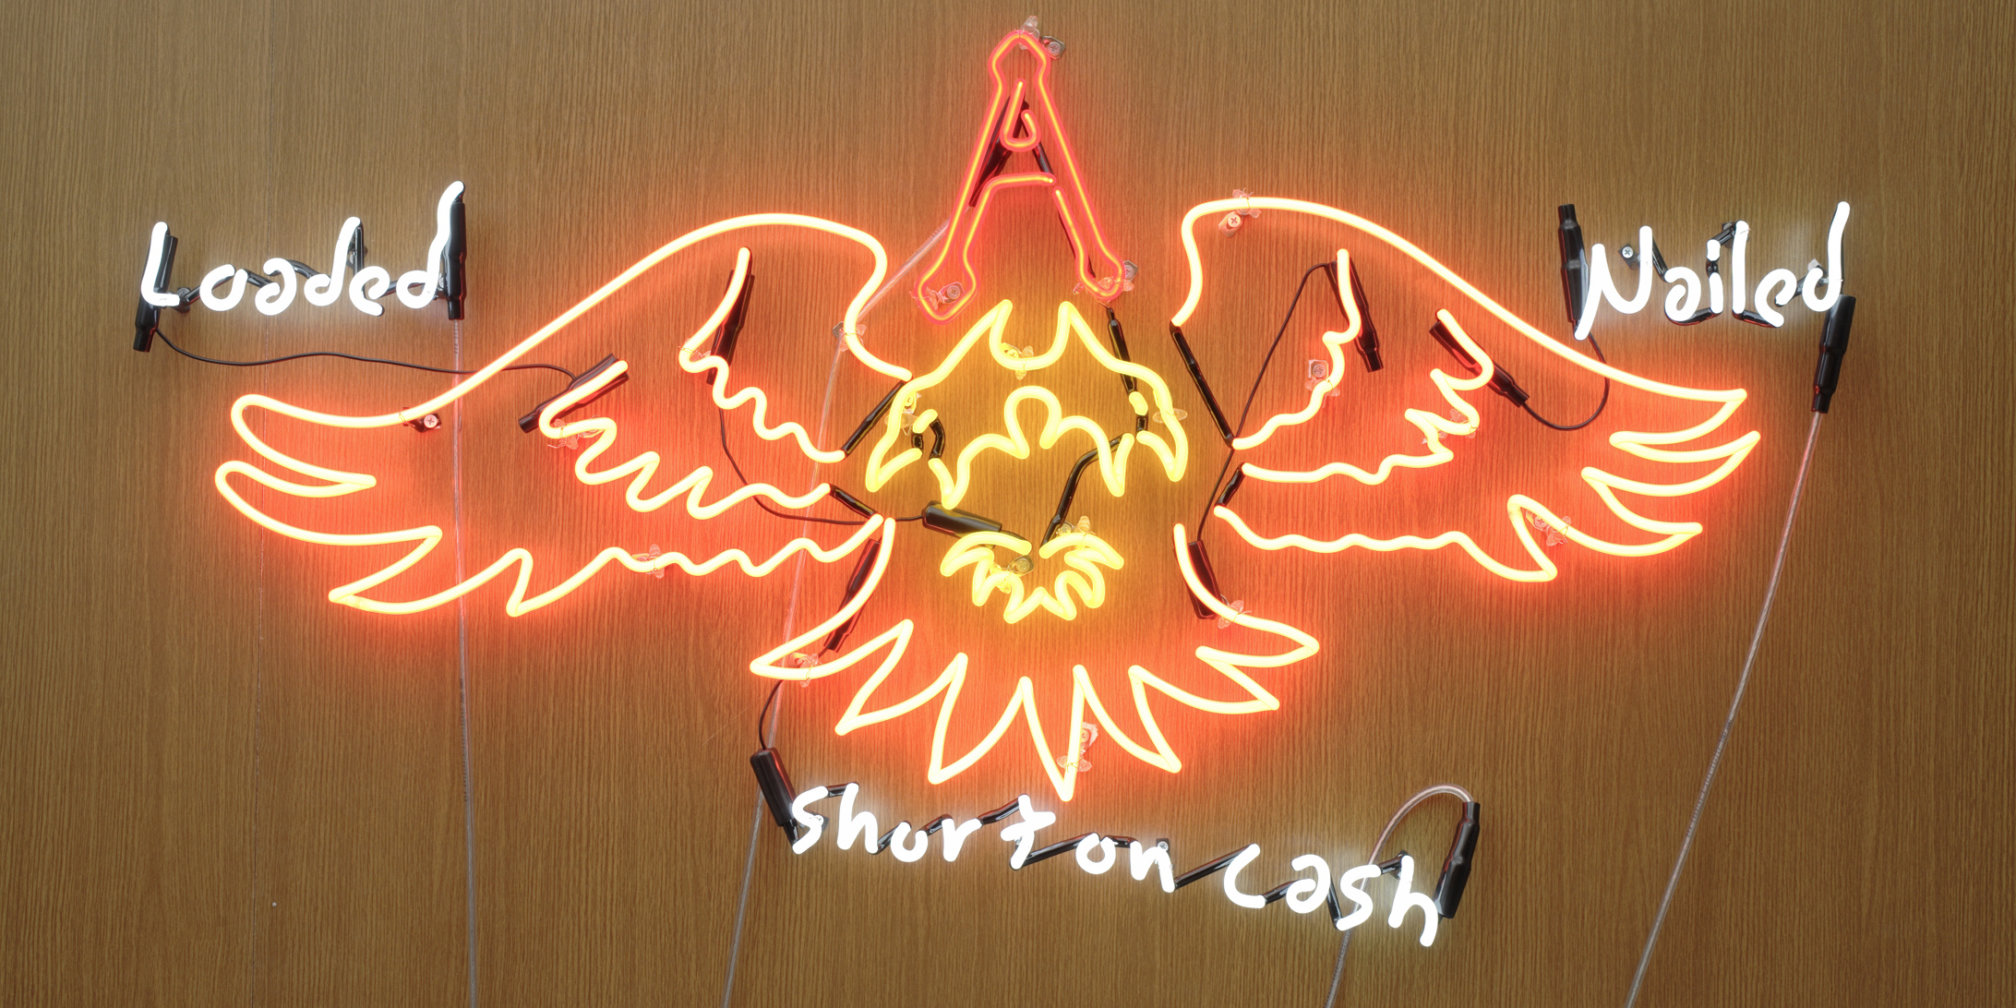 Dan Attoe, Loaded, Nailed and Short on Cash, 2006 (detail)